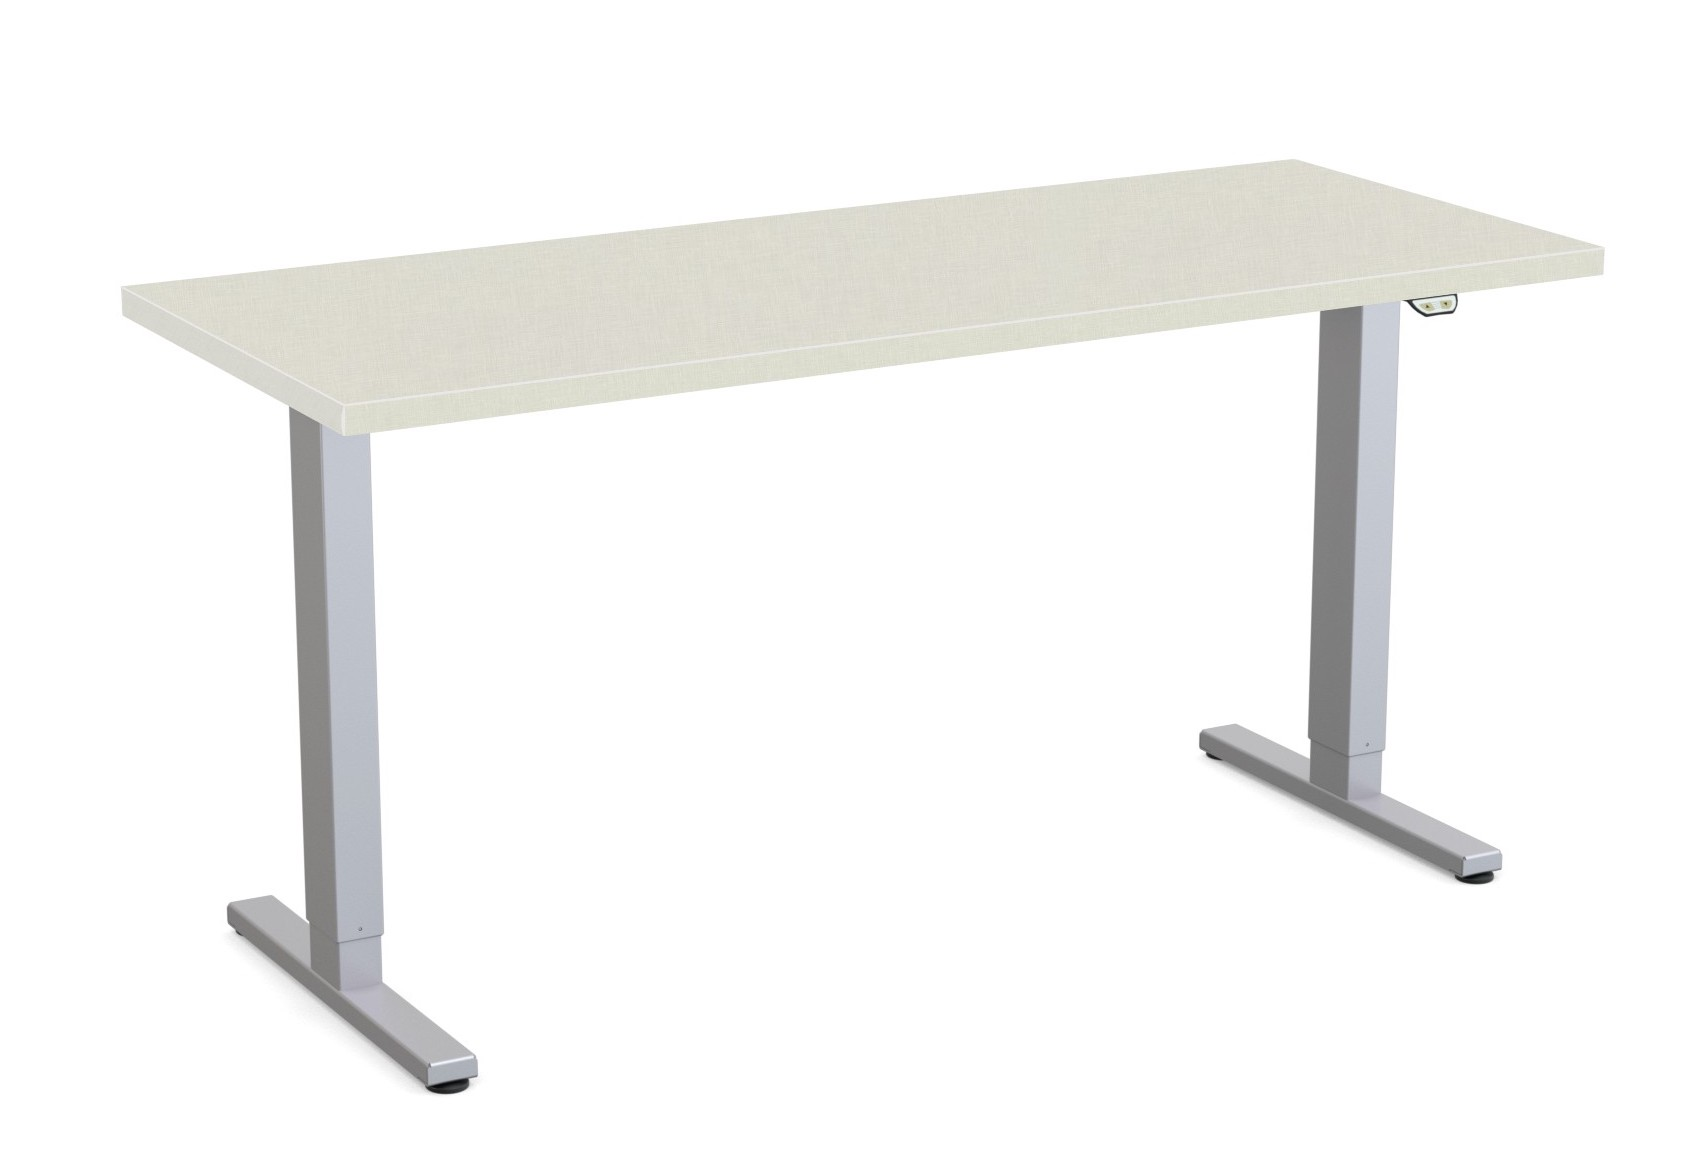 special-t liberty height adjustable table canvas